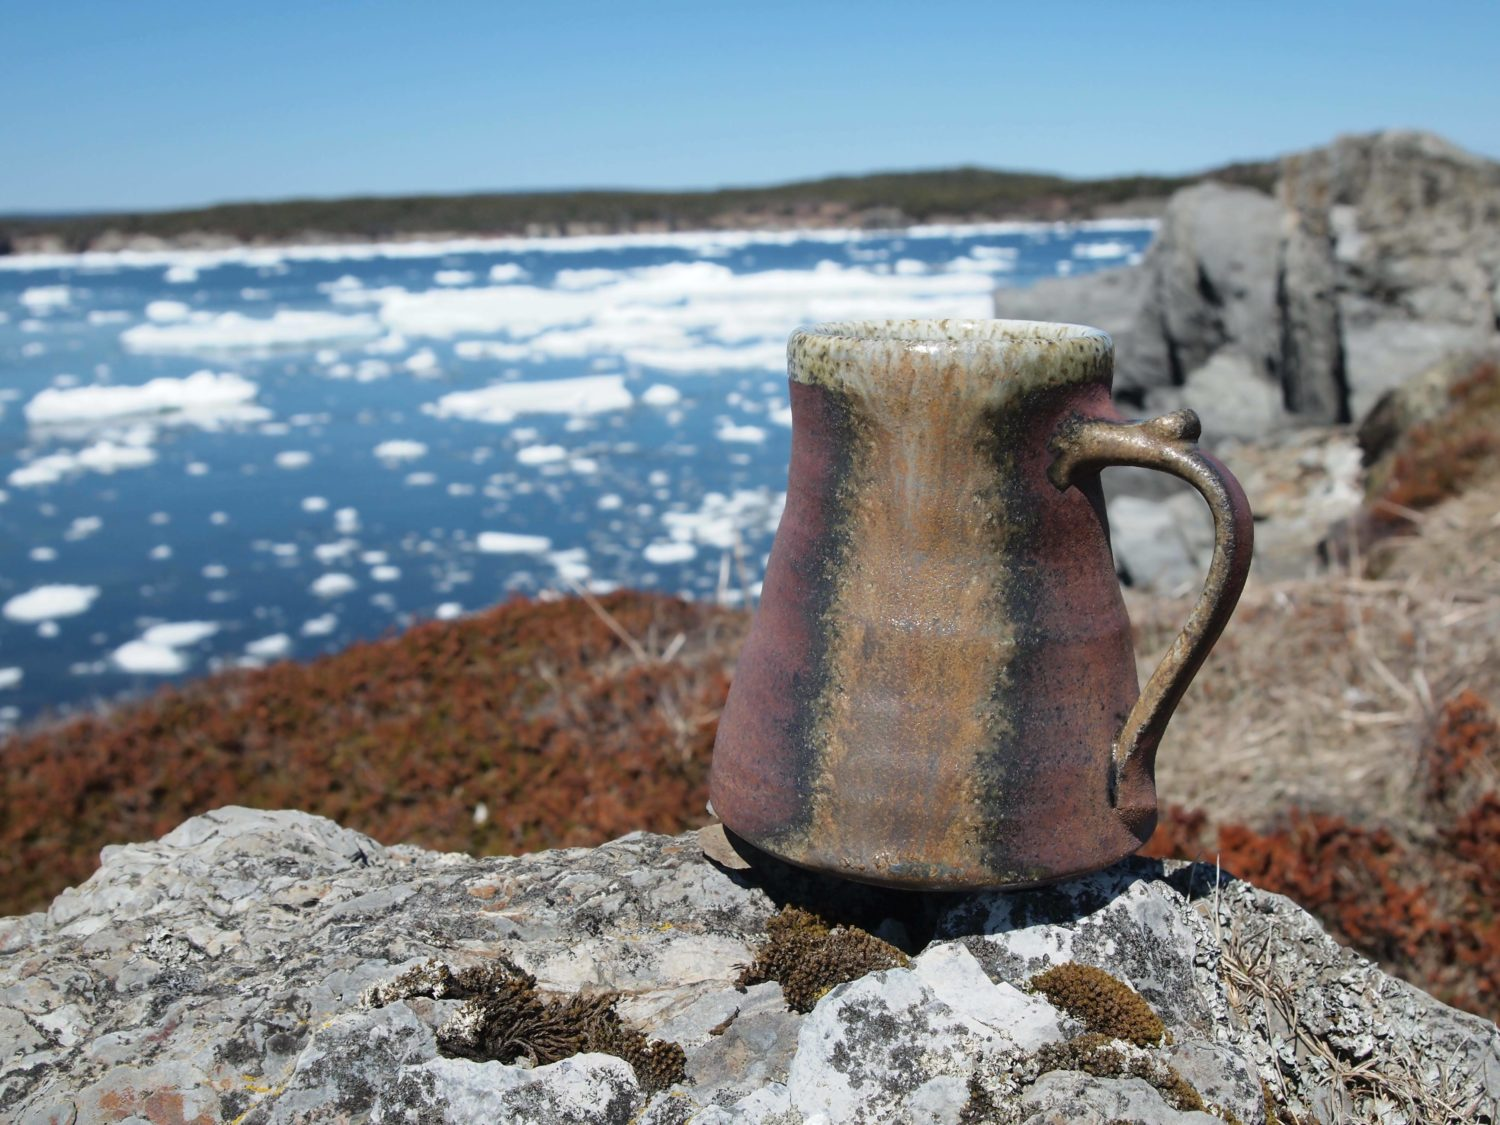 A clay mug sits on a rocky coastline with pack ice in the background